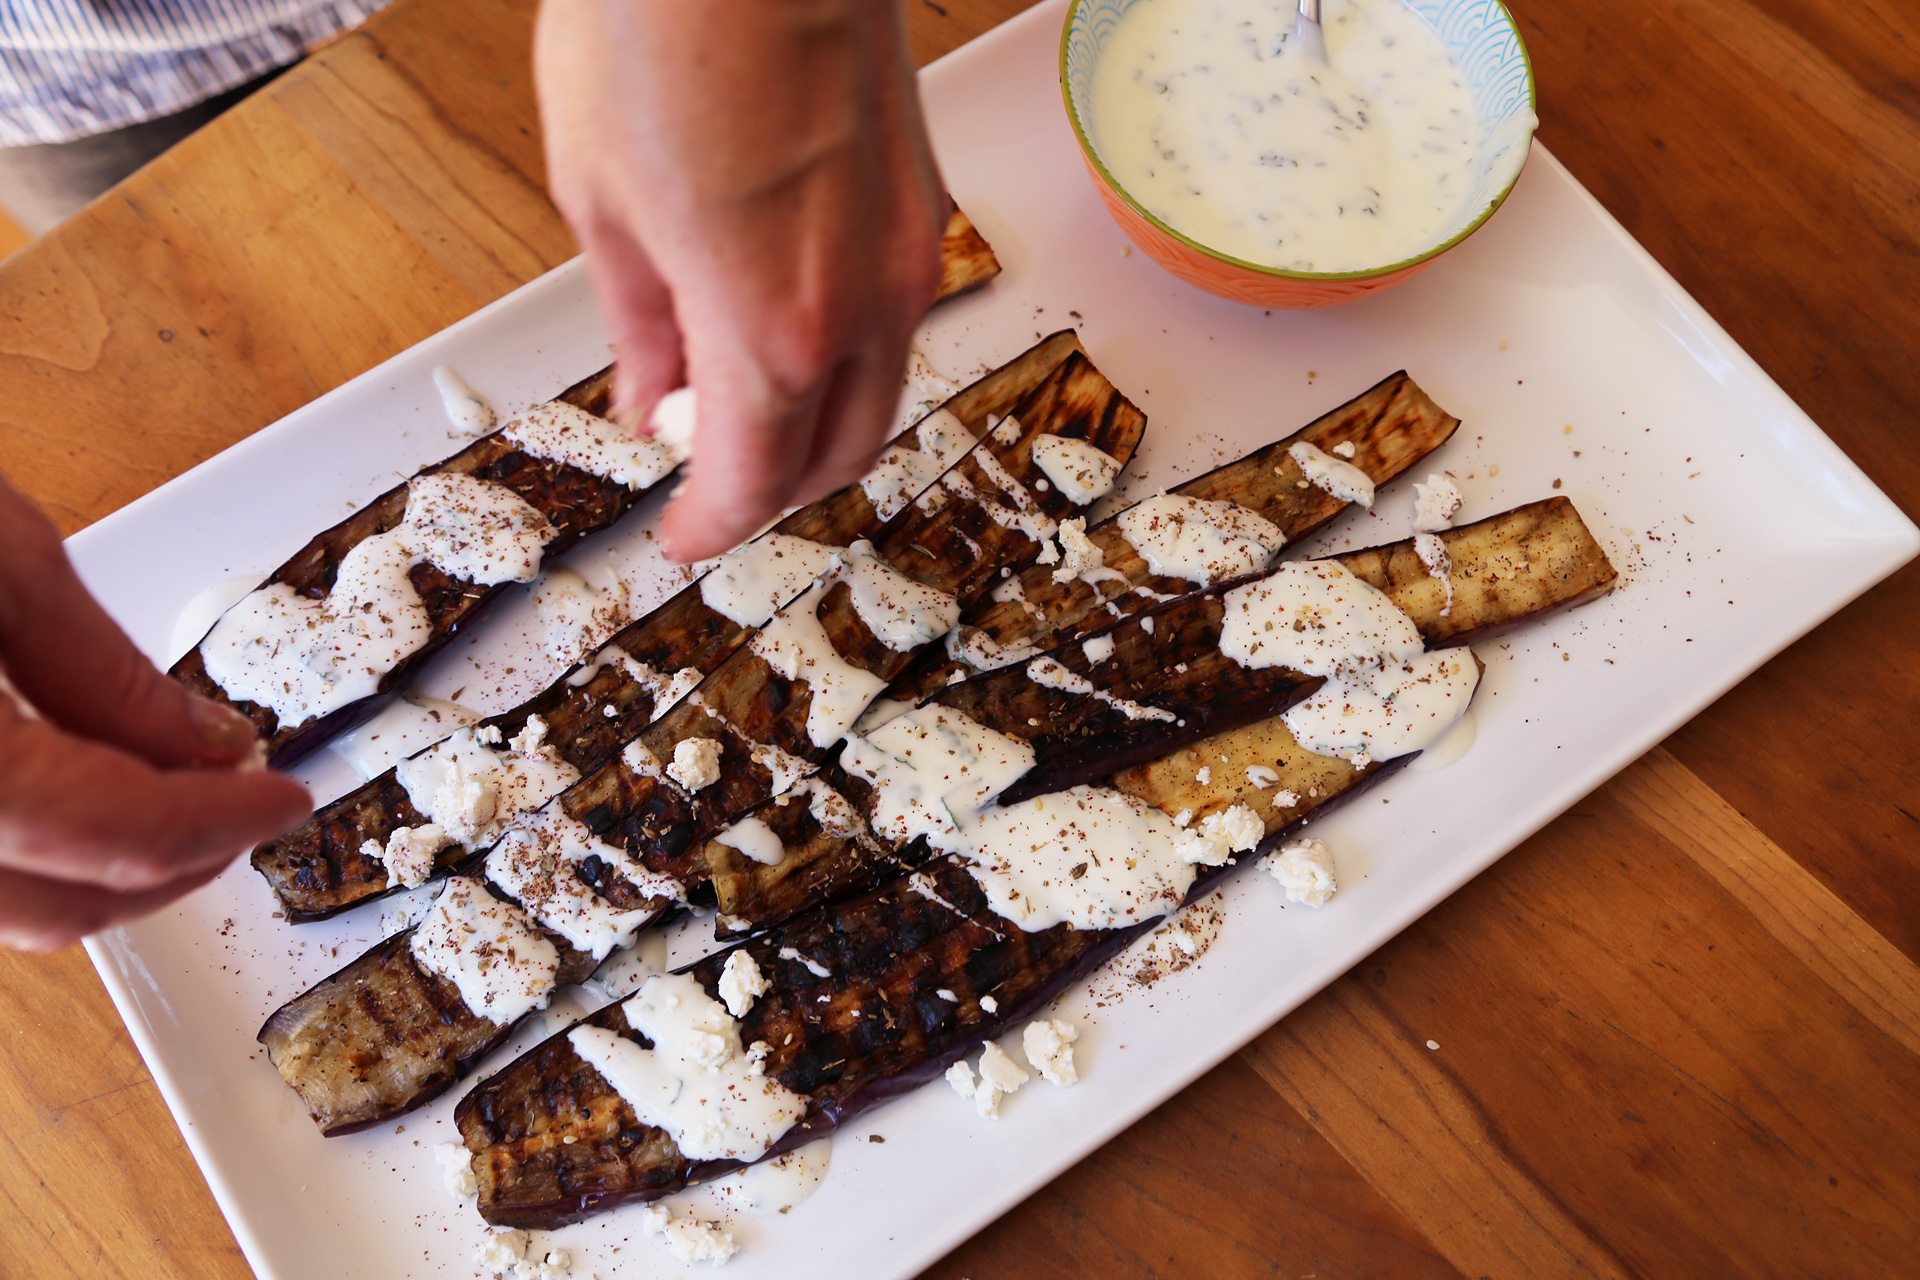 Transfer to a serving plate. Drizzle the eggplant with the yogurt sauce, then sprinkle with the feta and za'atar. Serve.